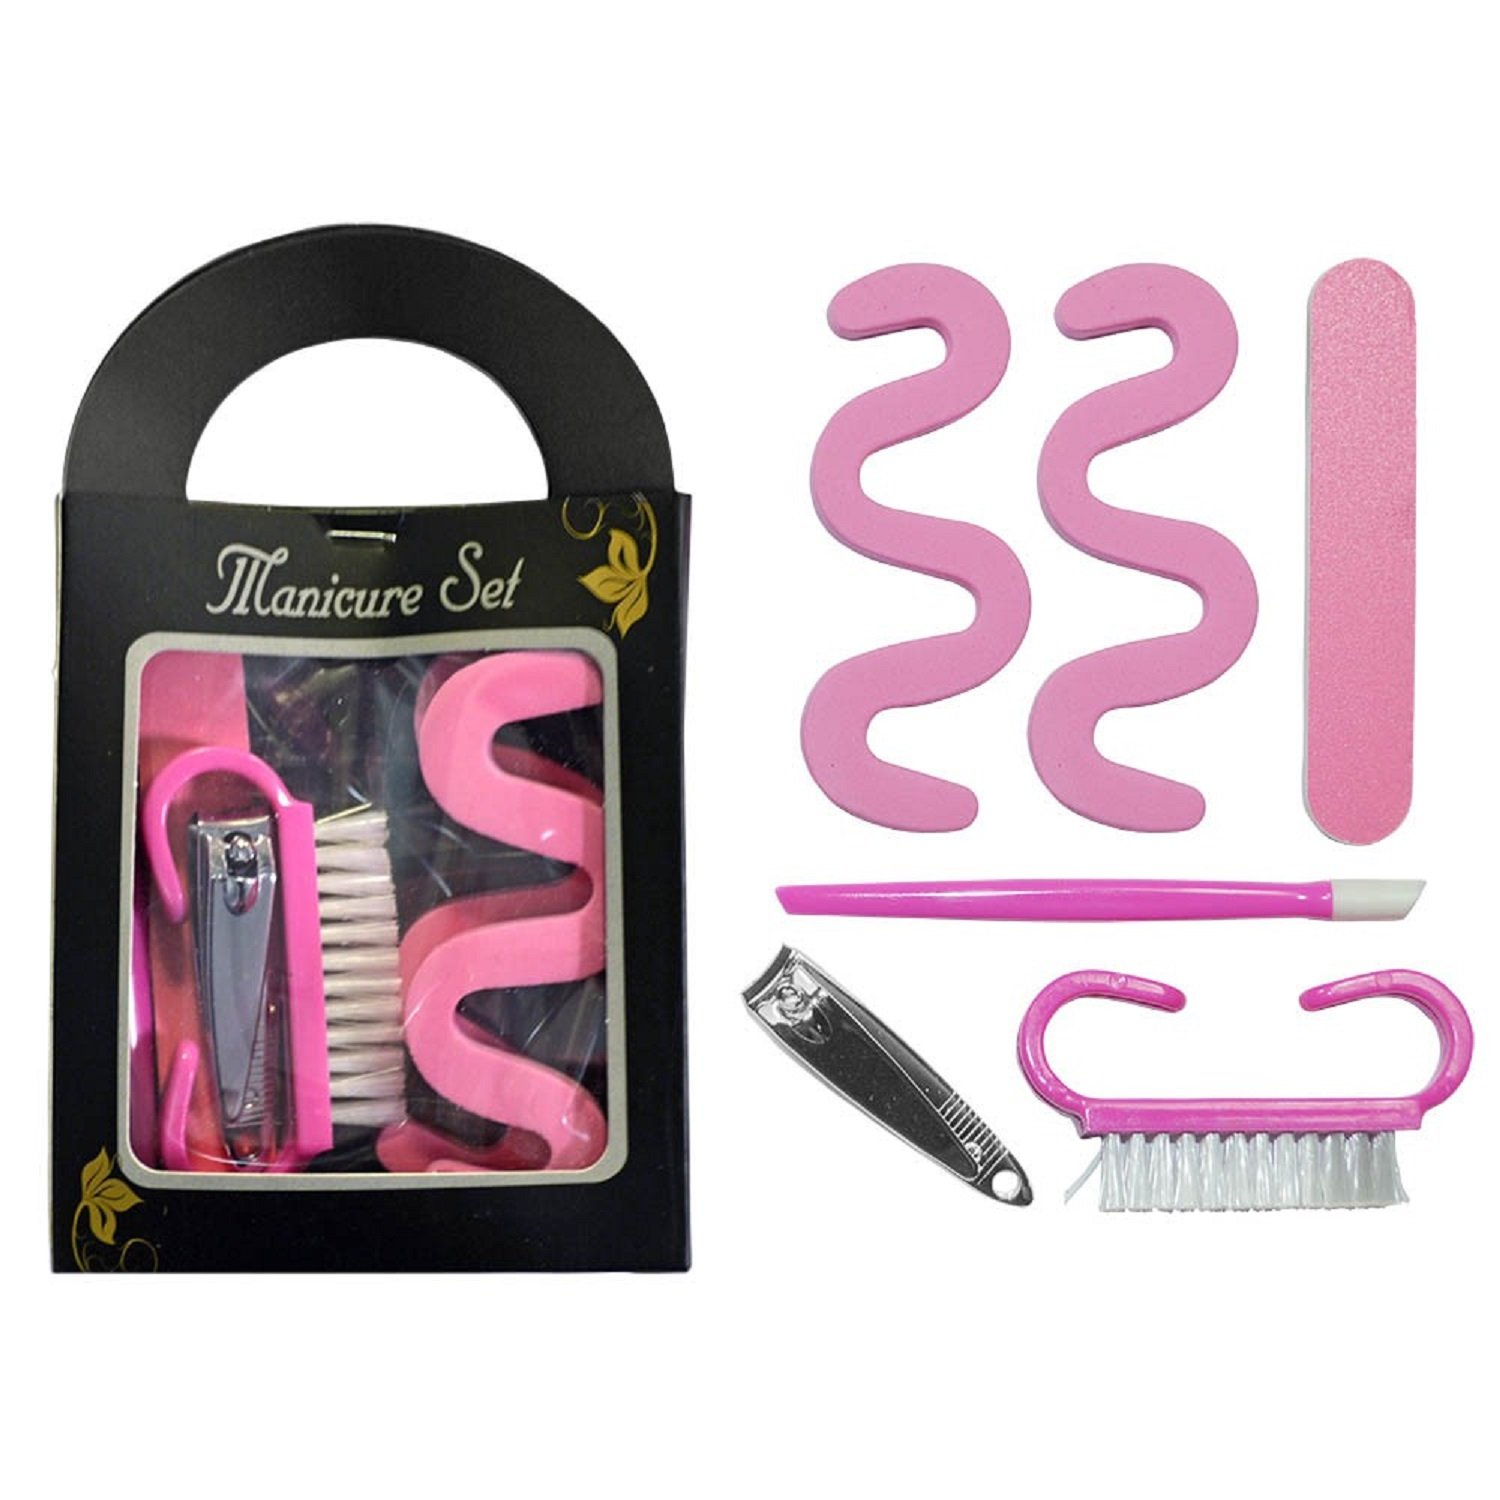 6 Piece Girls Mini Manicure Set Travel Kit Gift - Party Bag Fillers/Christmas Stocking Fillers Bits 'n' Bobbles